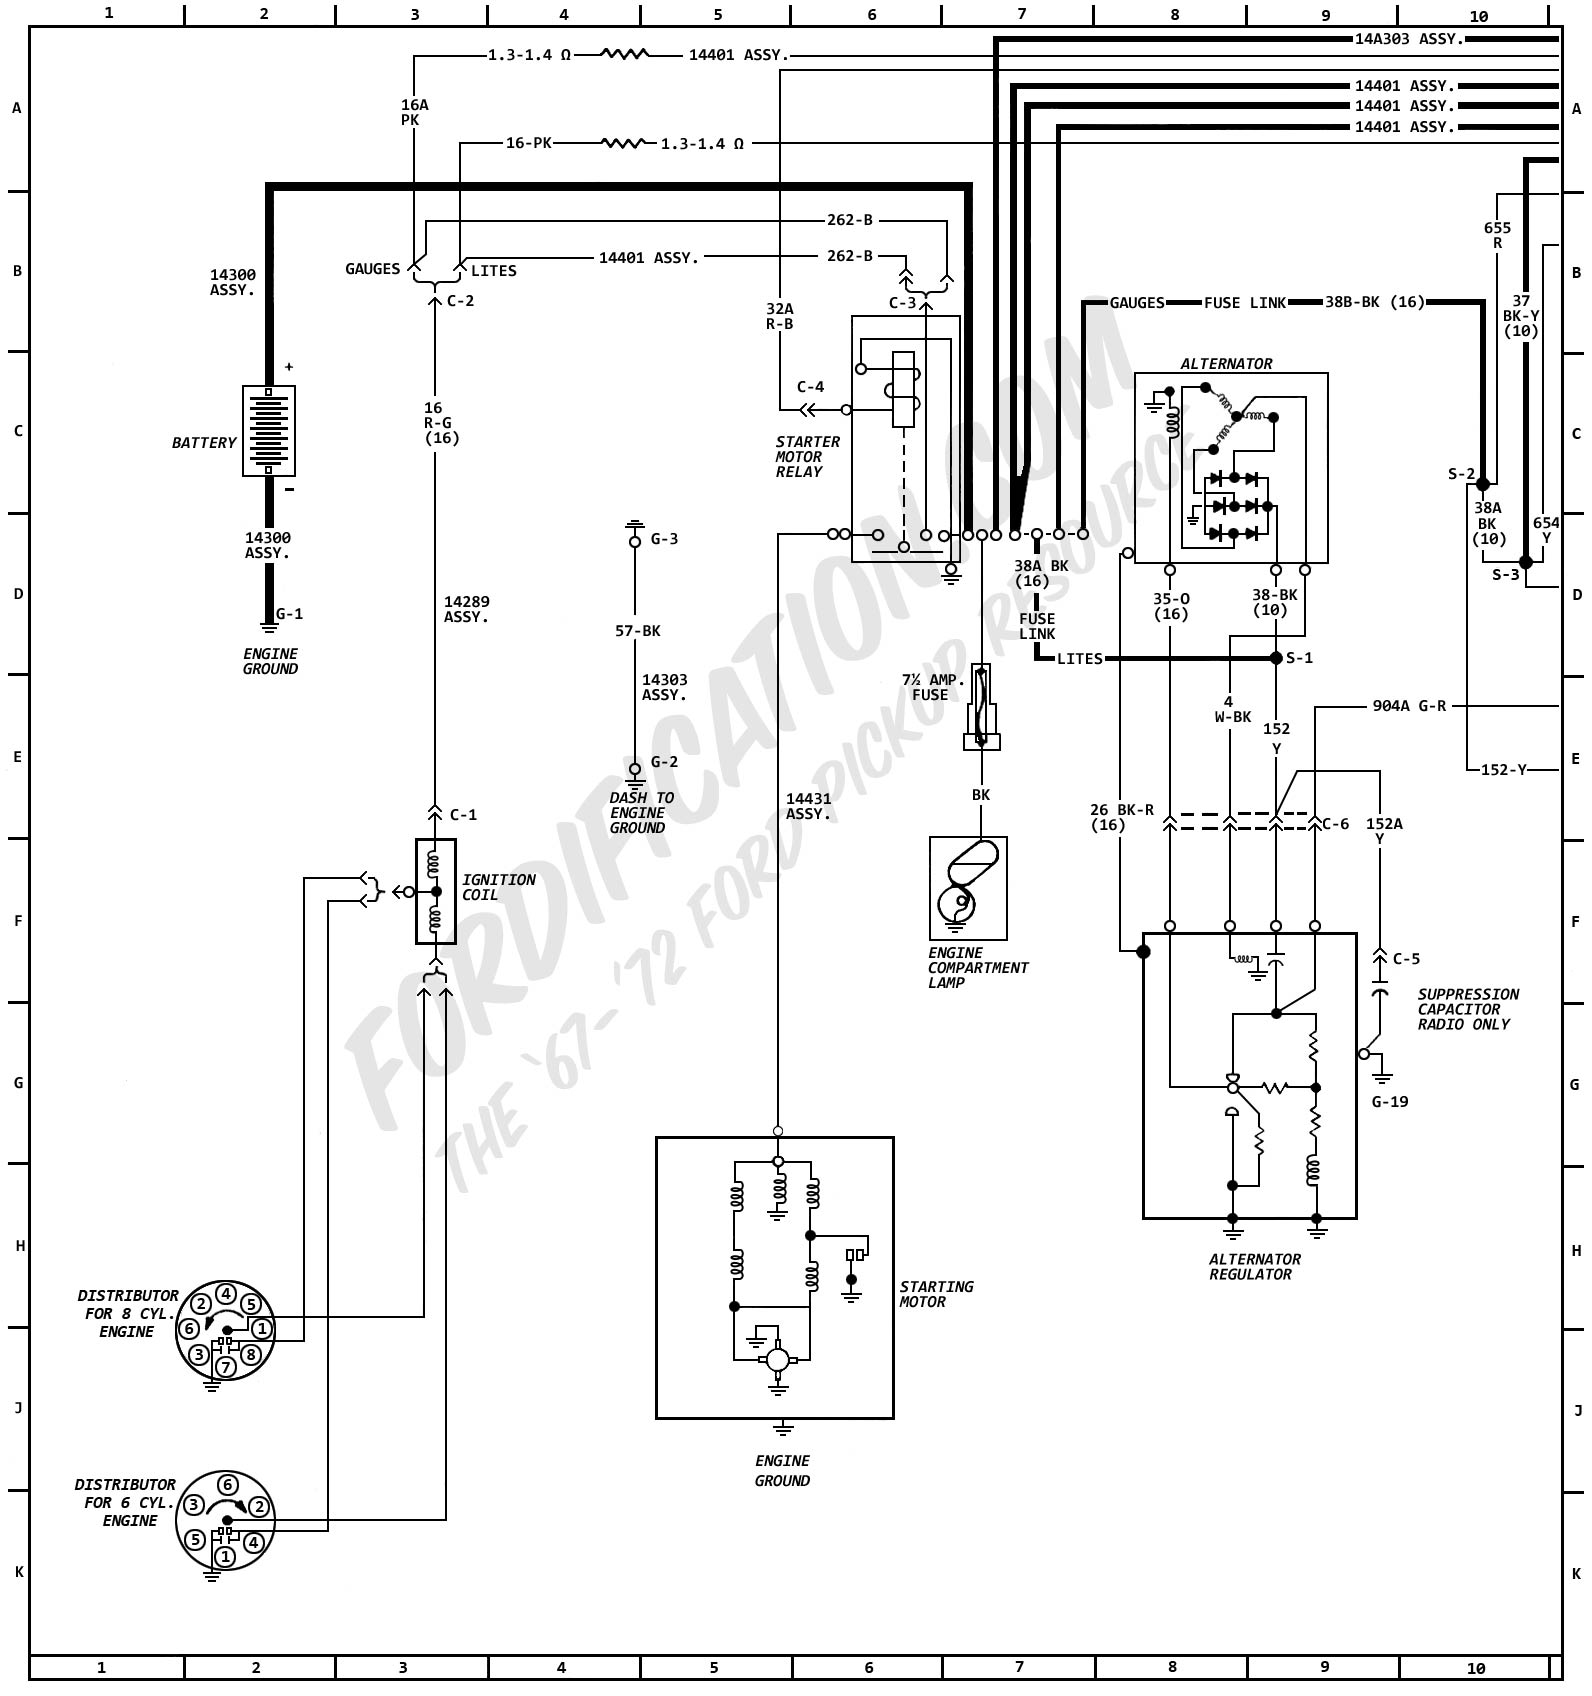 1972 ford f250 ignition wiring diagram - wiring diagram book belt-link-a -  belt-link-a.prolocoisoletremiti.it  prolocoisoletremiti.it